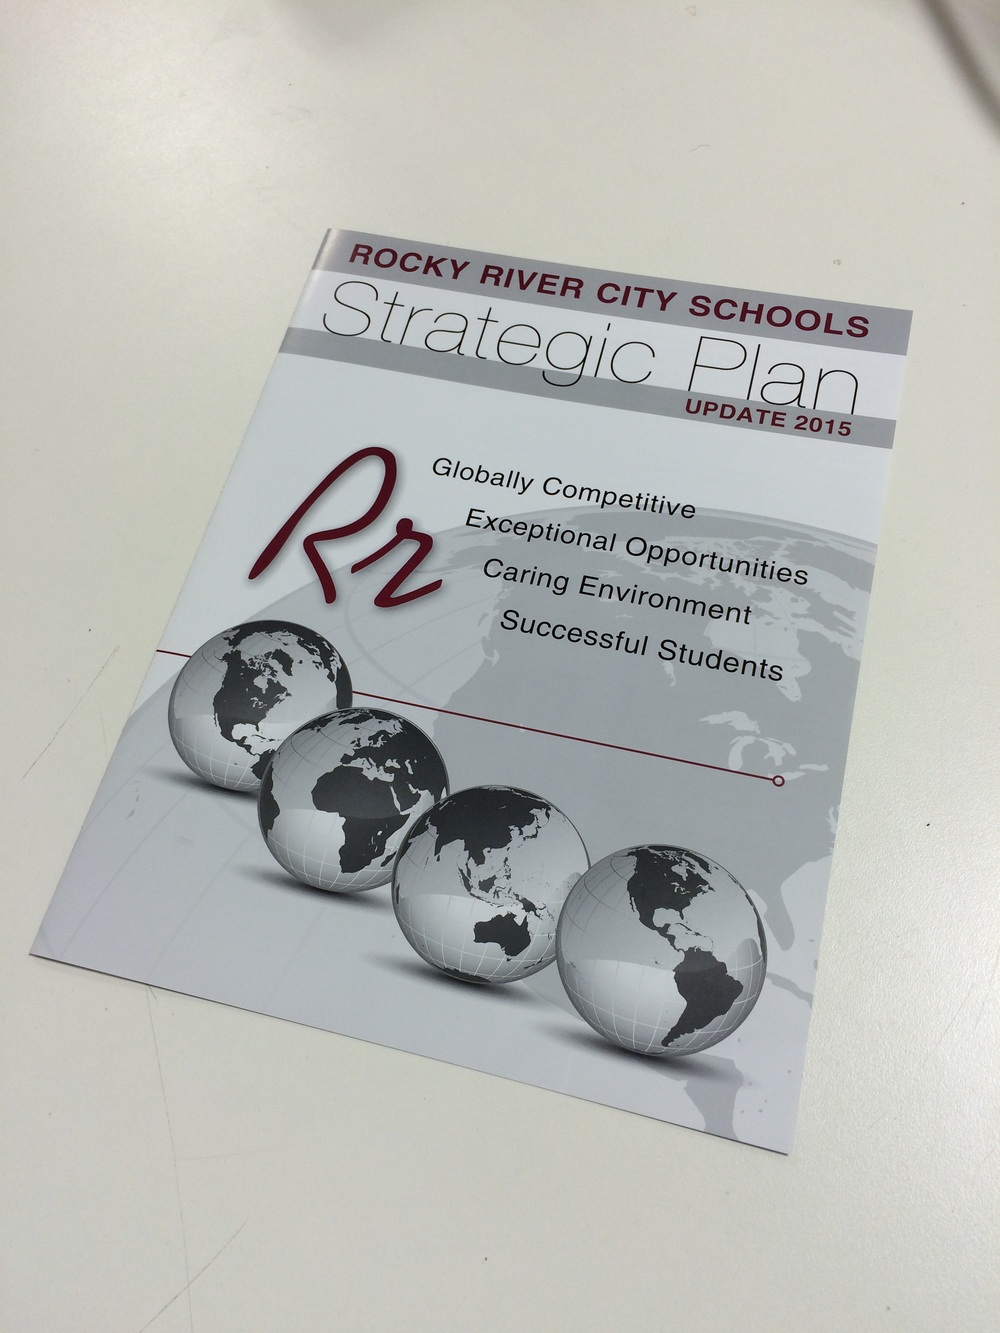 The message was simple: an education founded in Rocky River to help prepare students for the world.